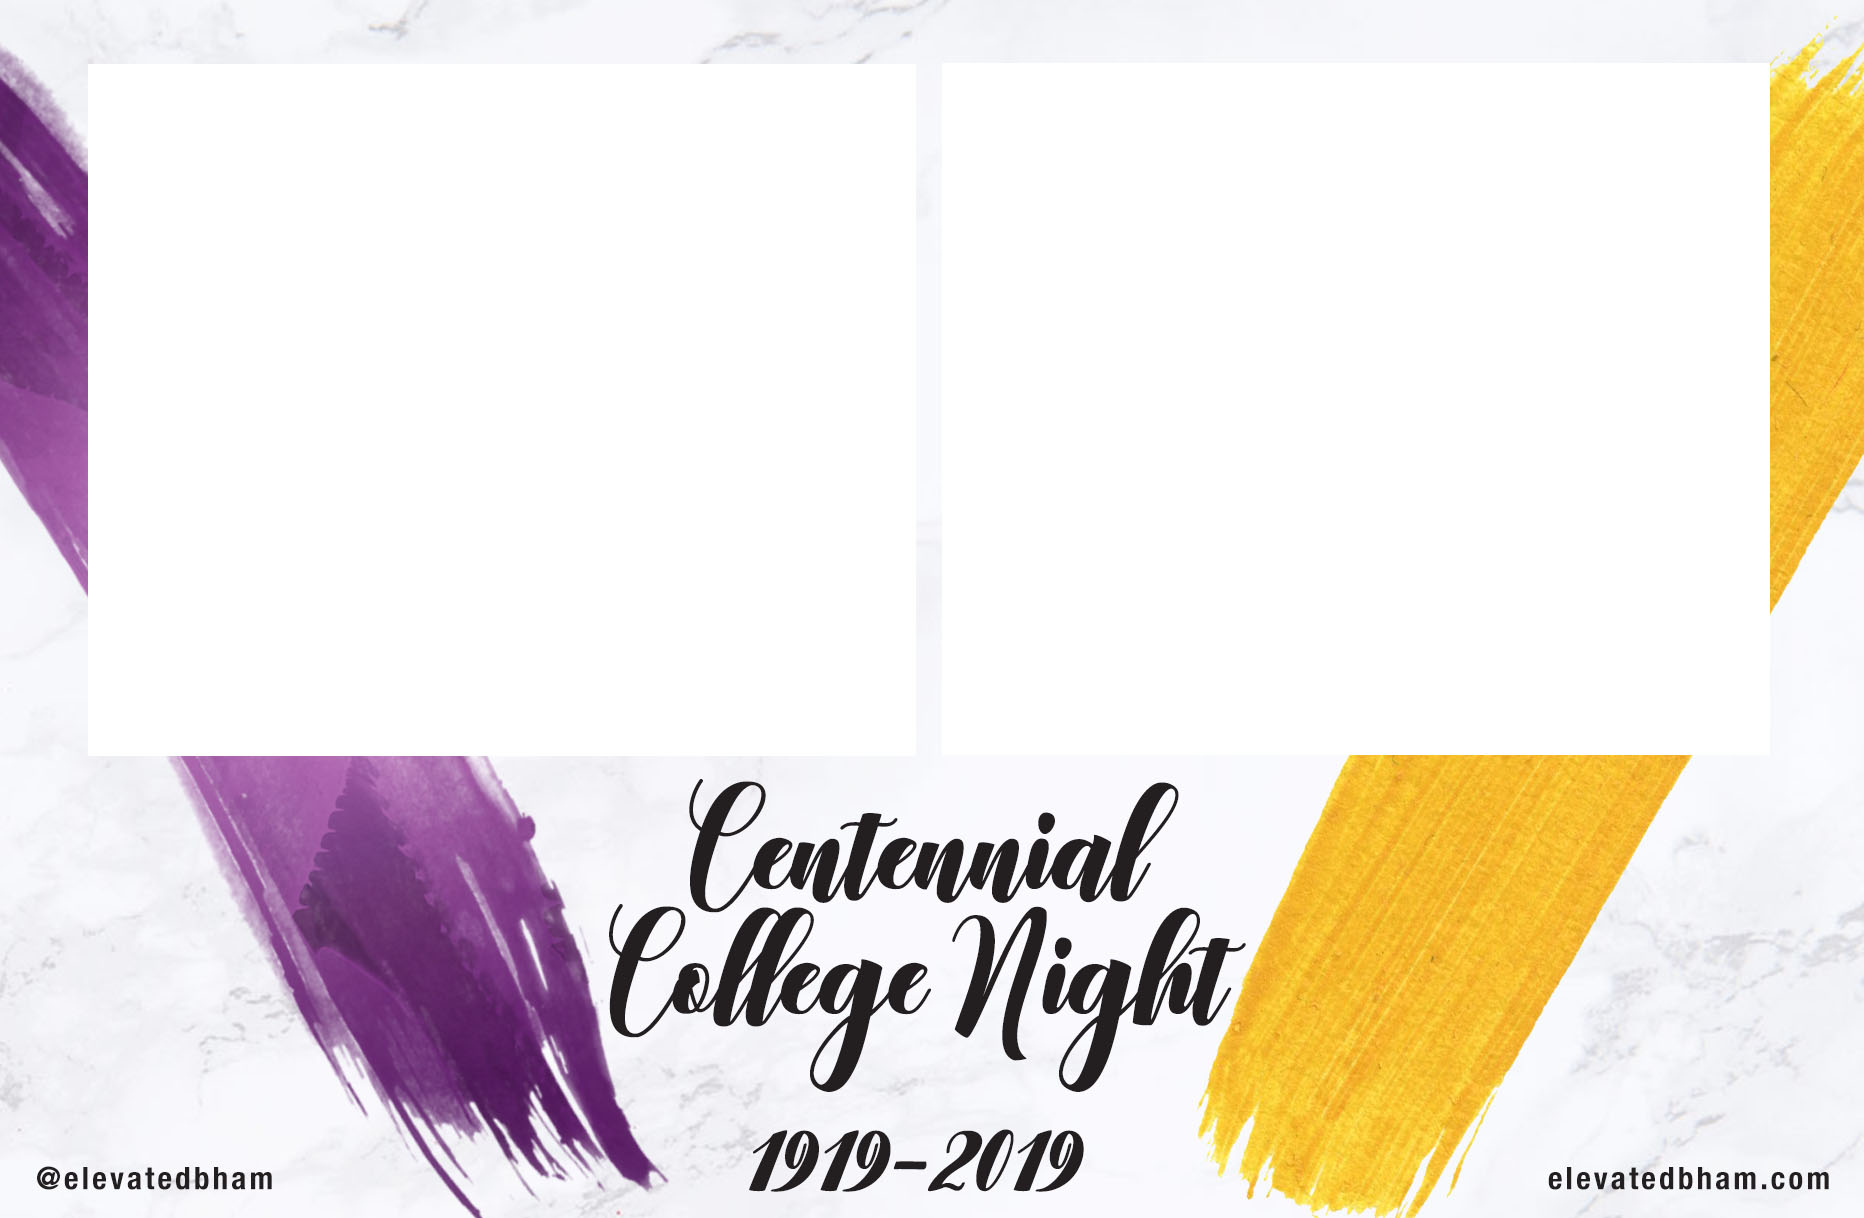 centennialcollegenight3.jpg